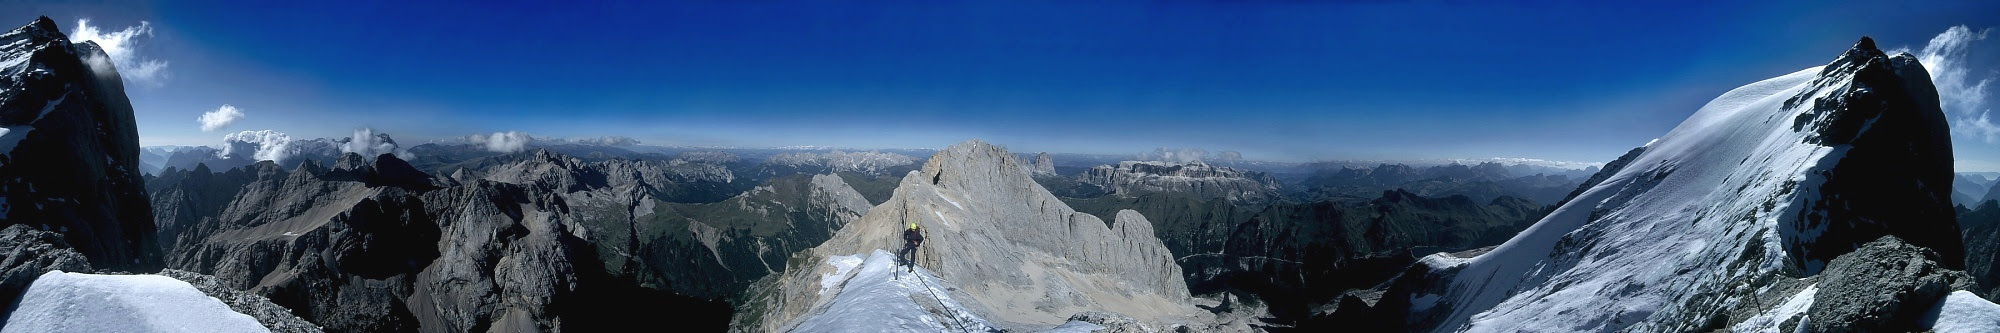 360° panoramic view from Marmolada, highest peak in the Dolomites